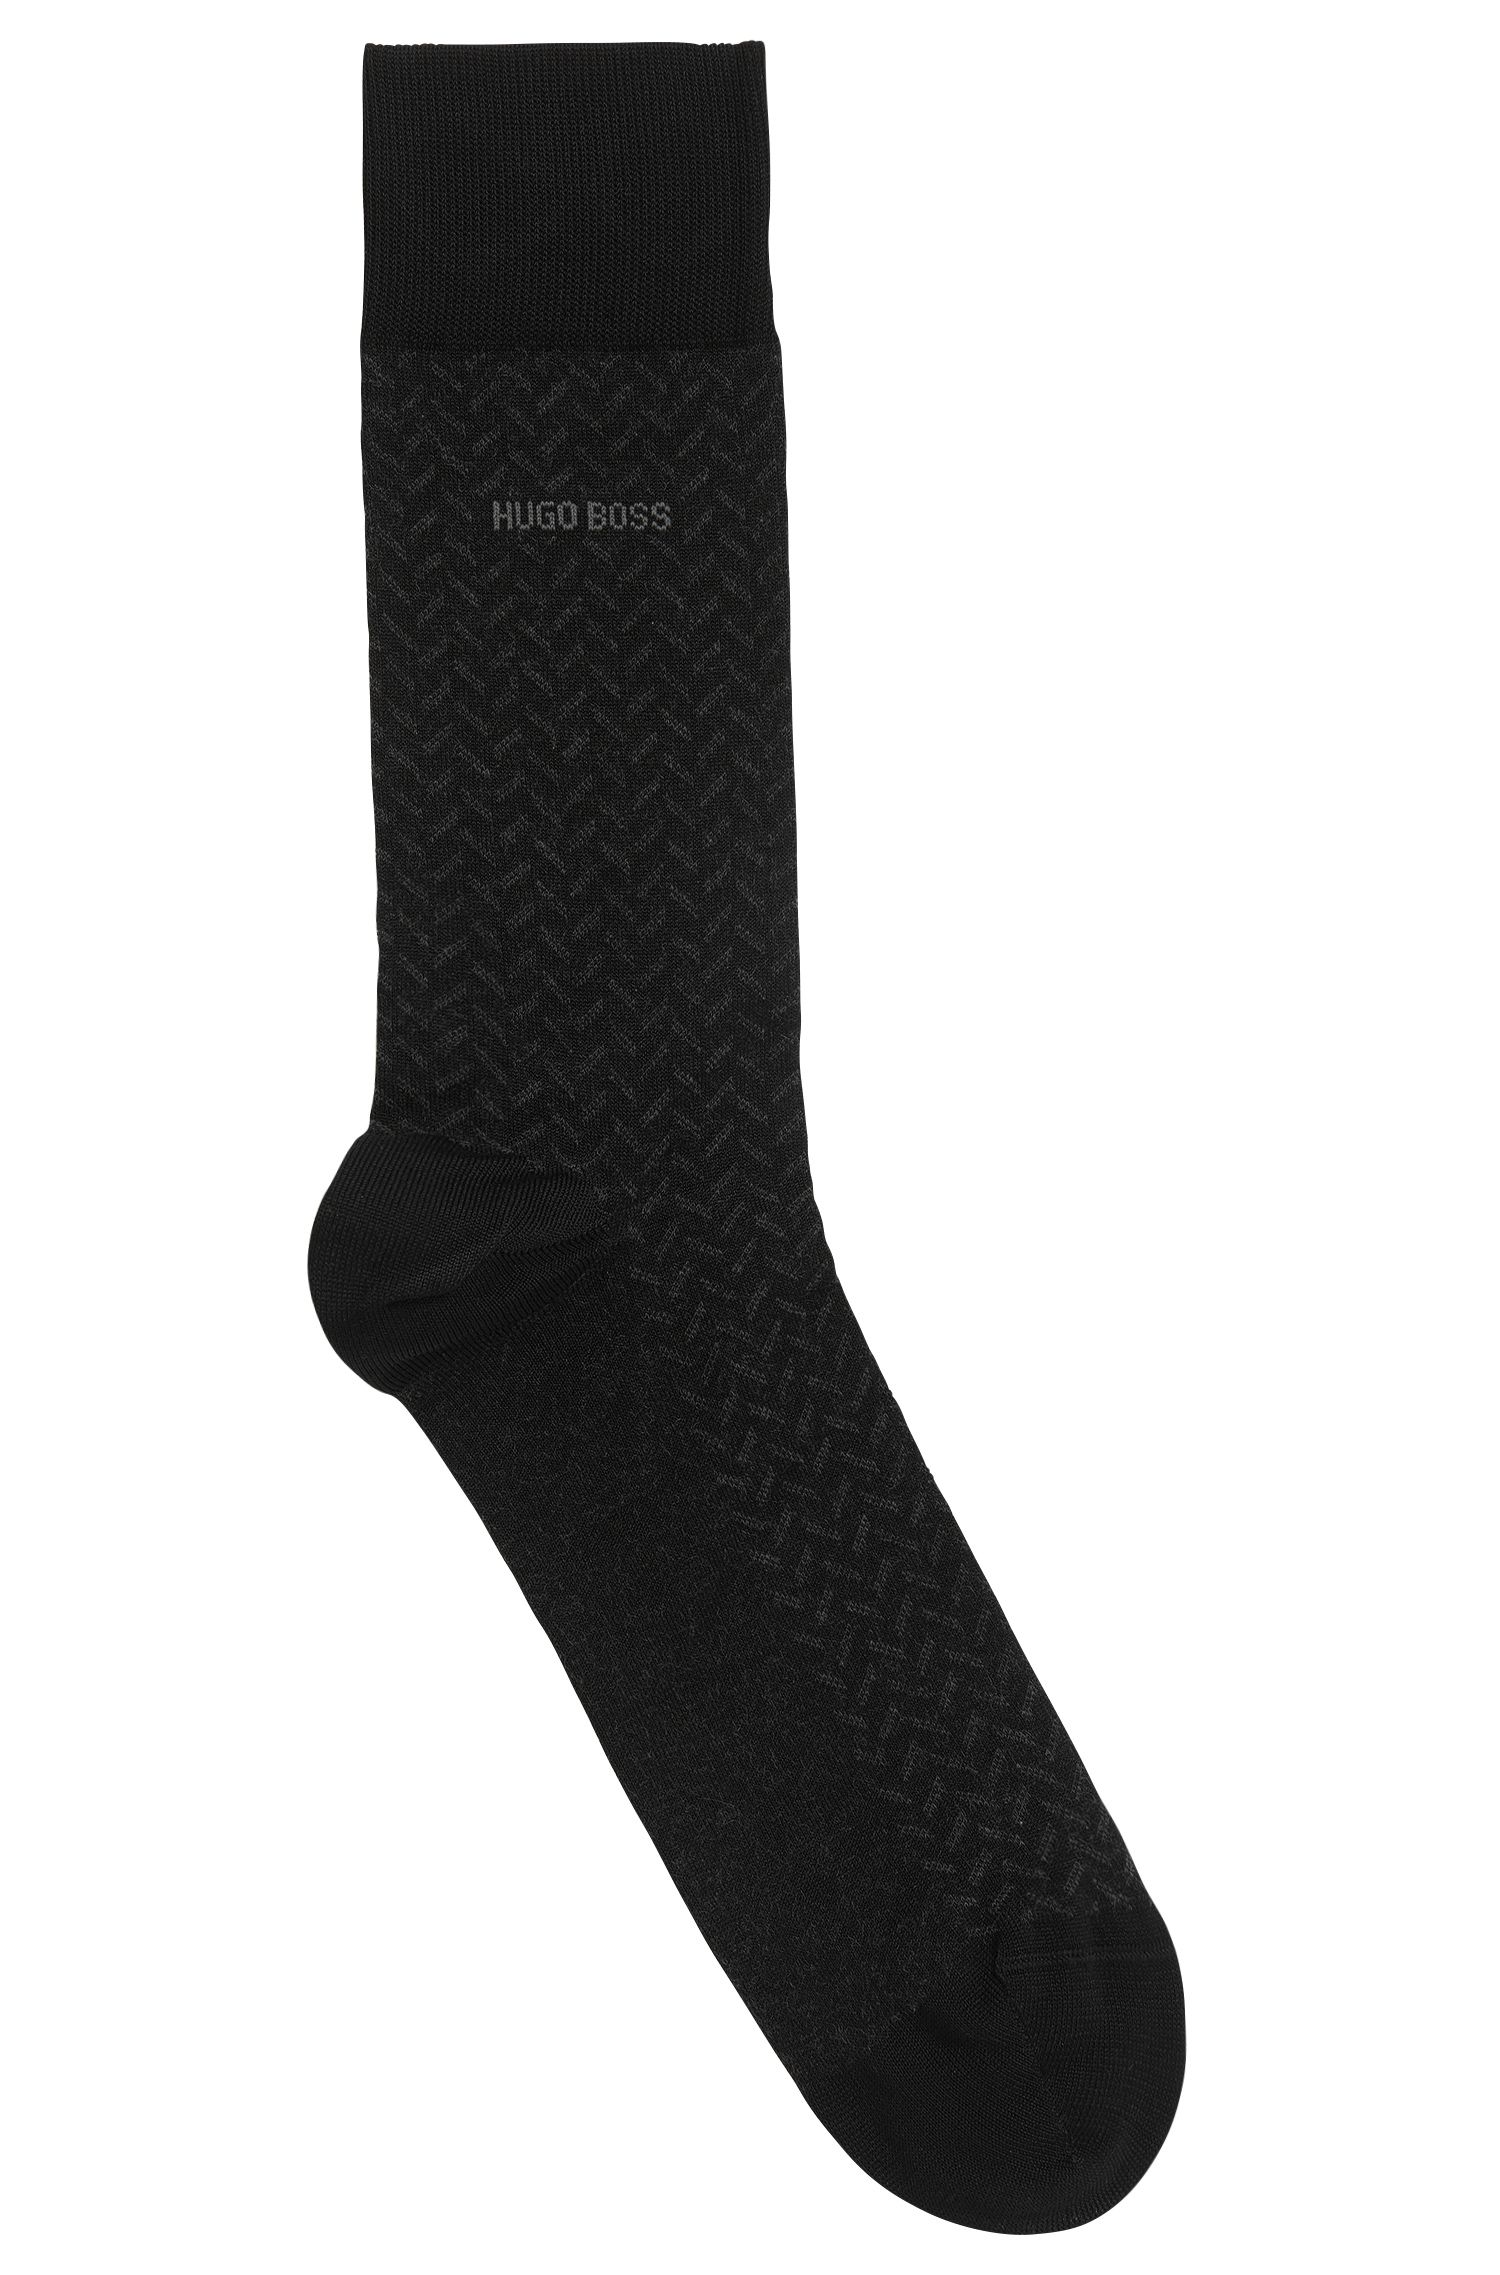 Chevron Striped Stretch Cotton Socks | RS MiniPattern US MC, Black